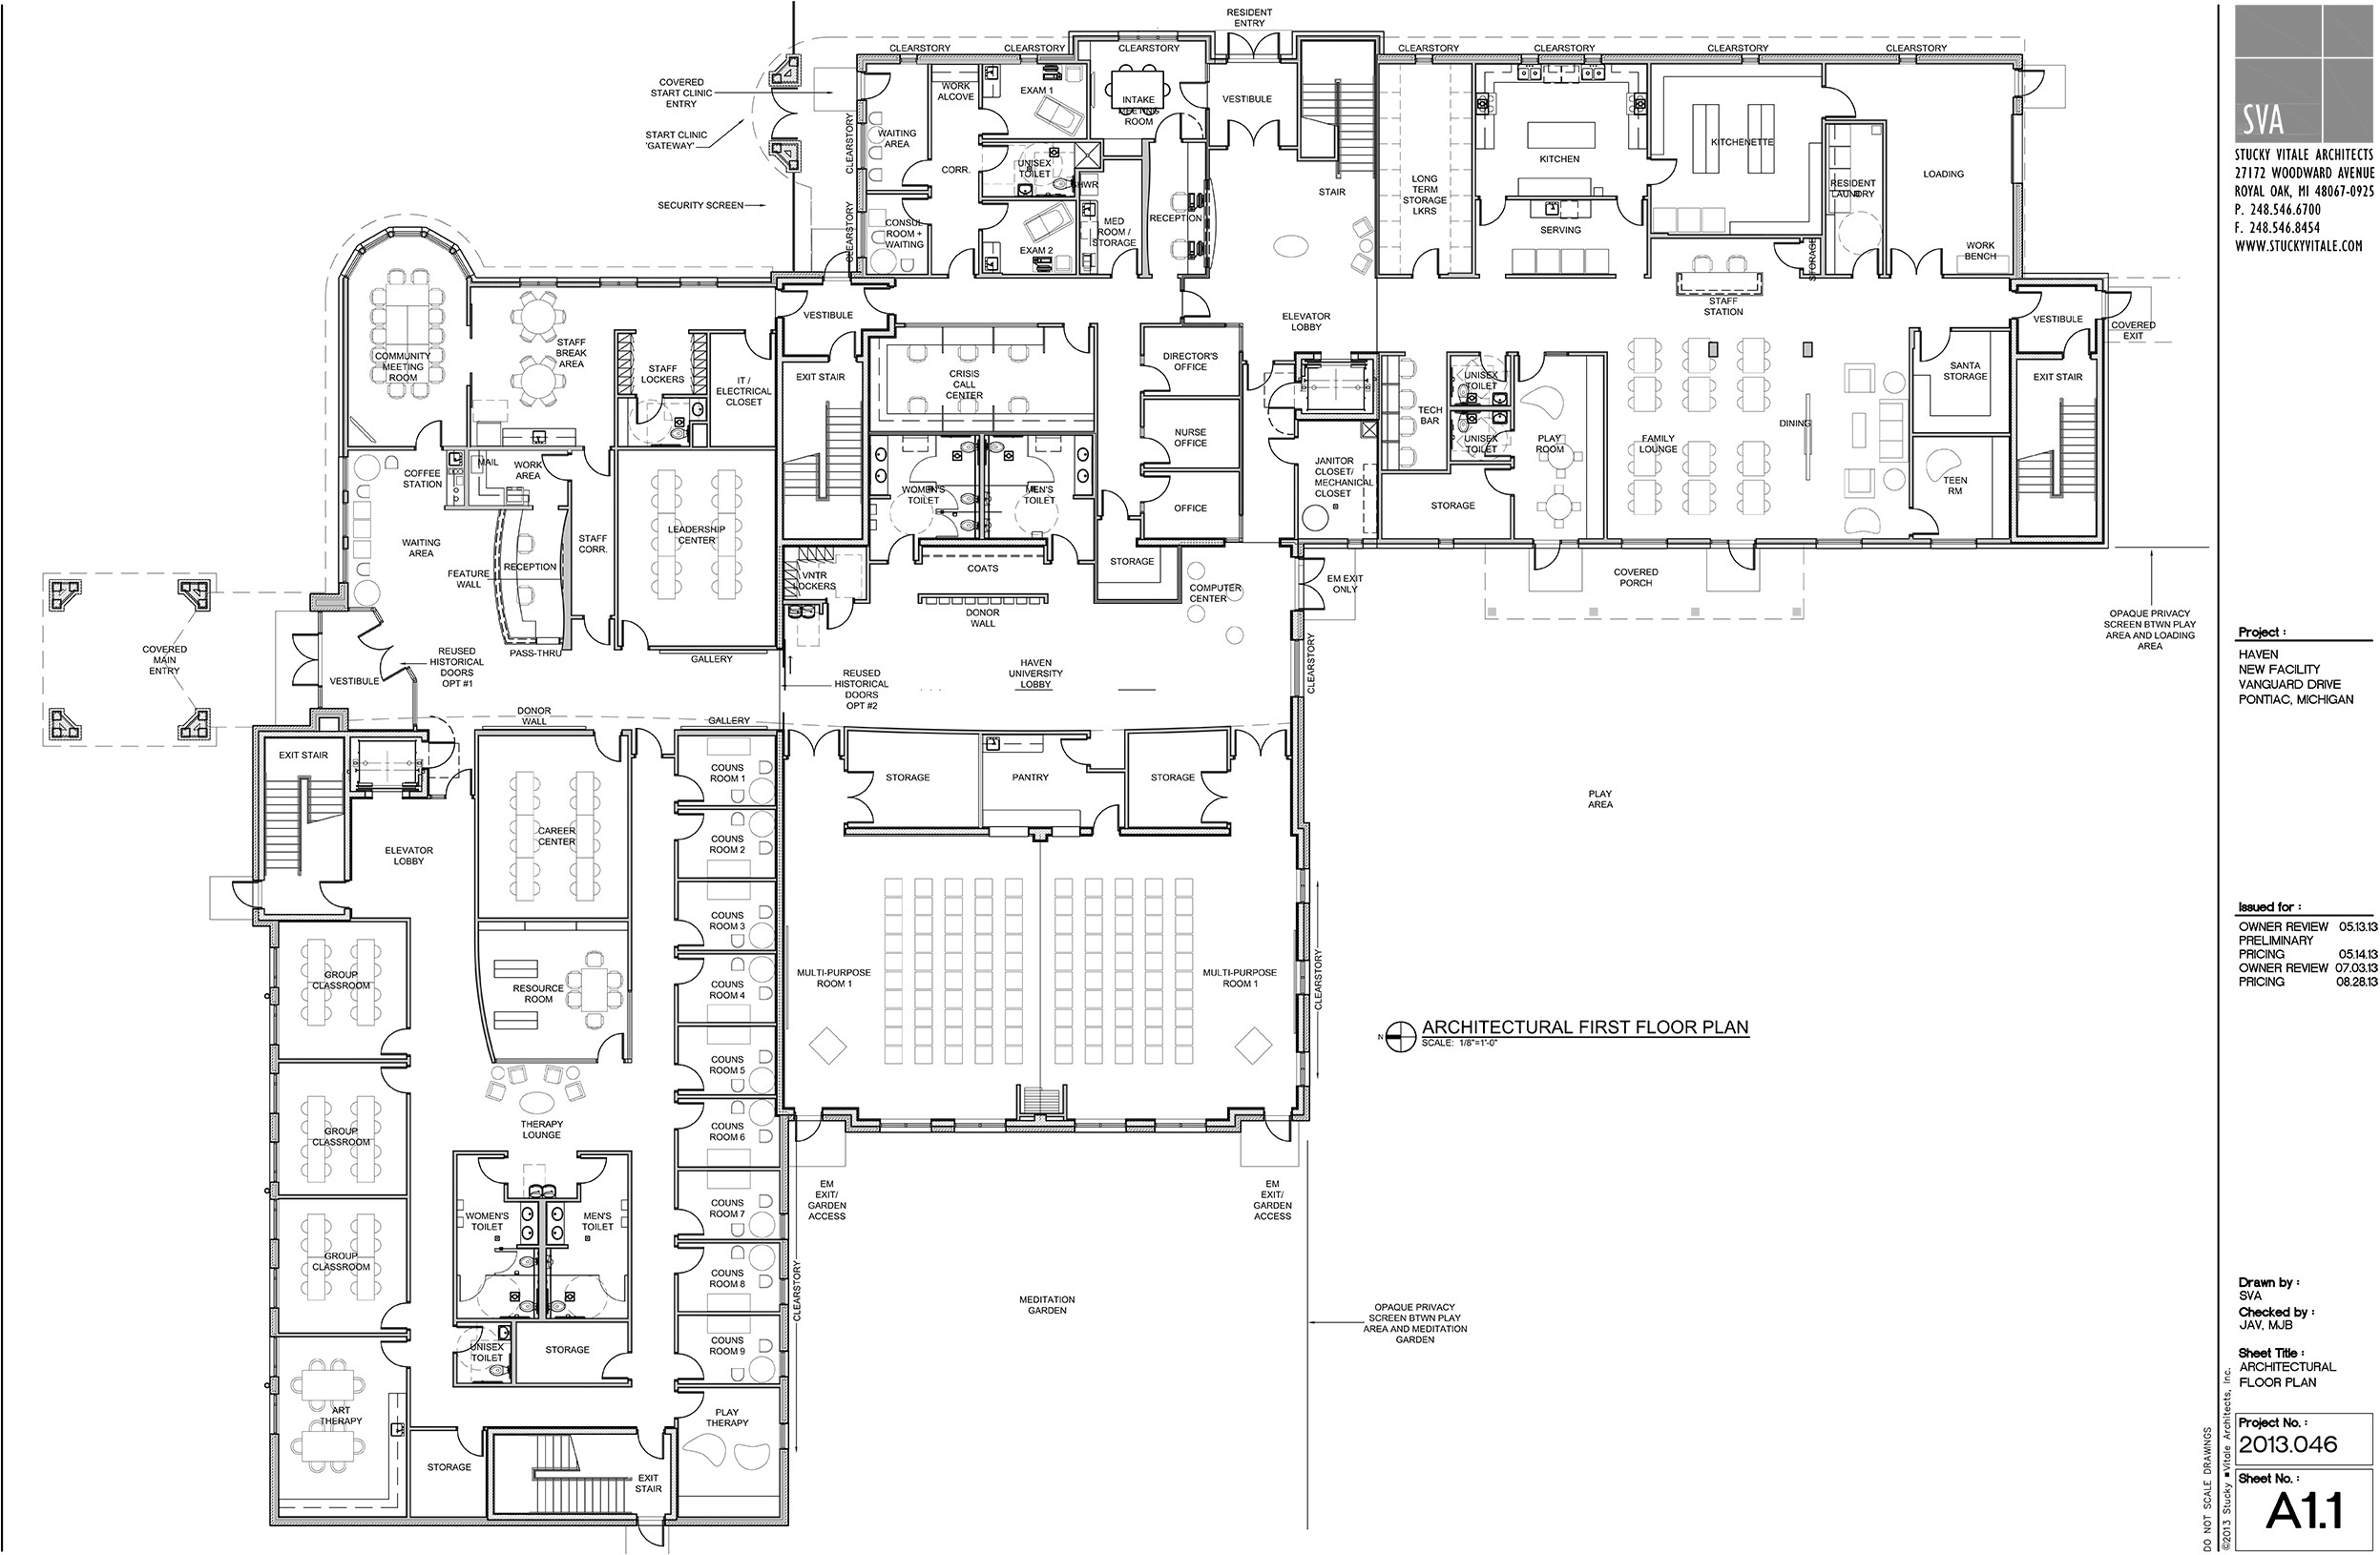 floor plans online house modern architecture interior design inspiration for luxury home layout ideas small making make programs